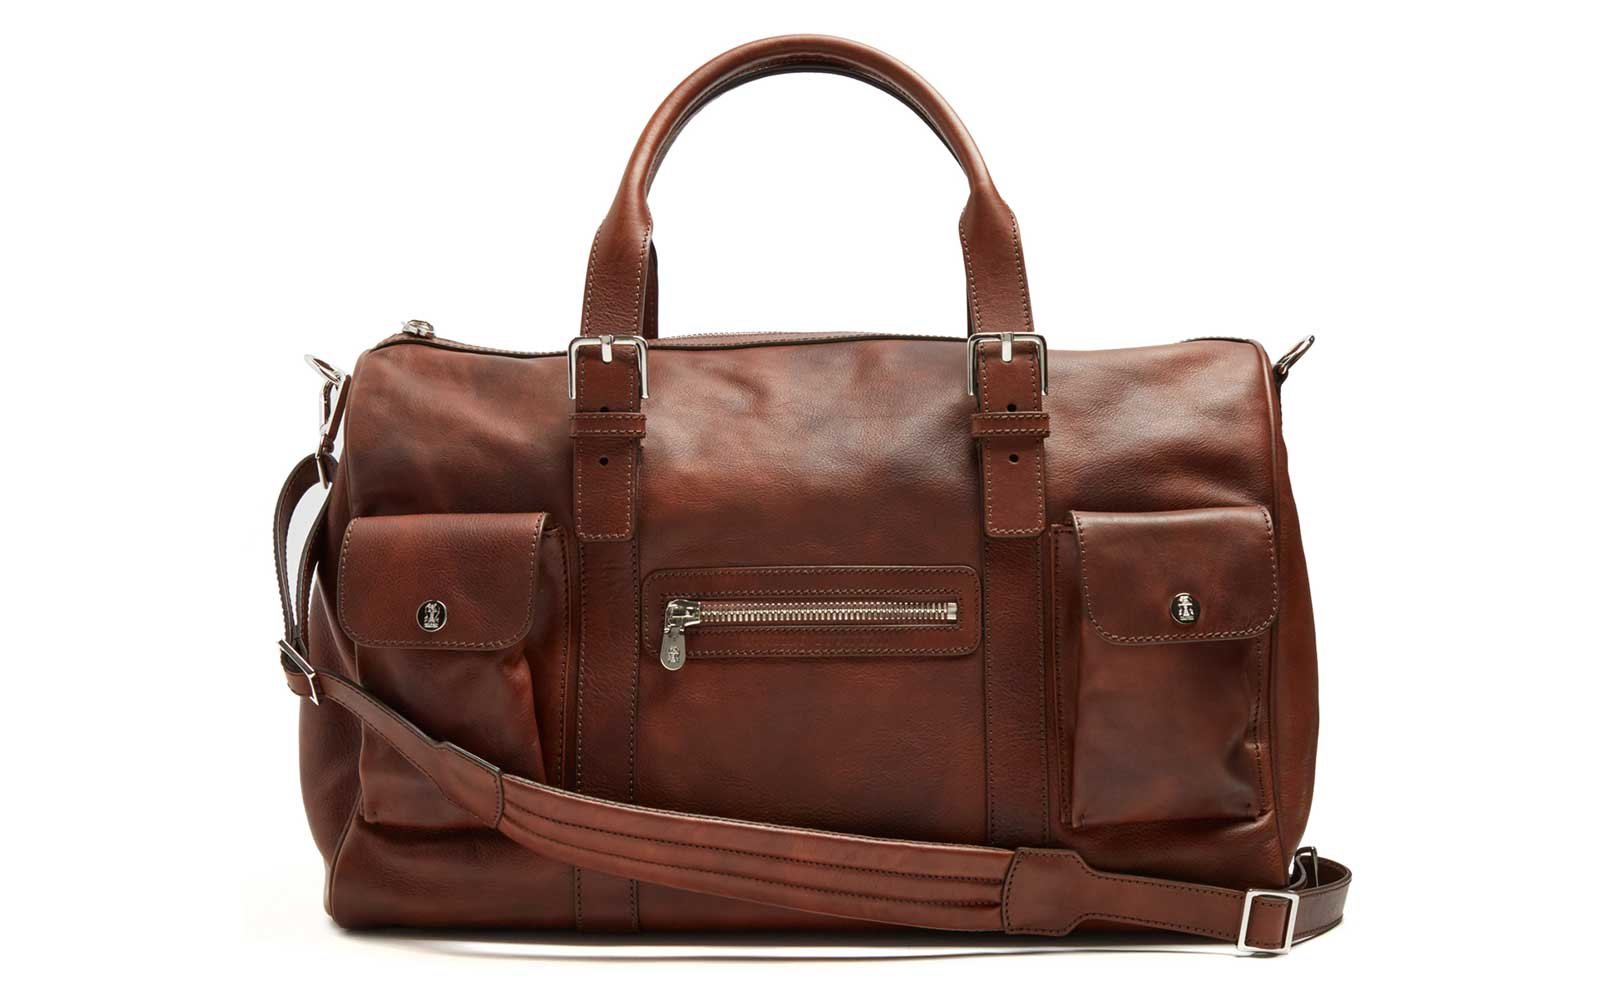 Bruno Cucinelli Duffel Bag for Travel